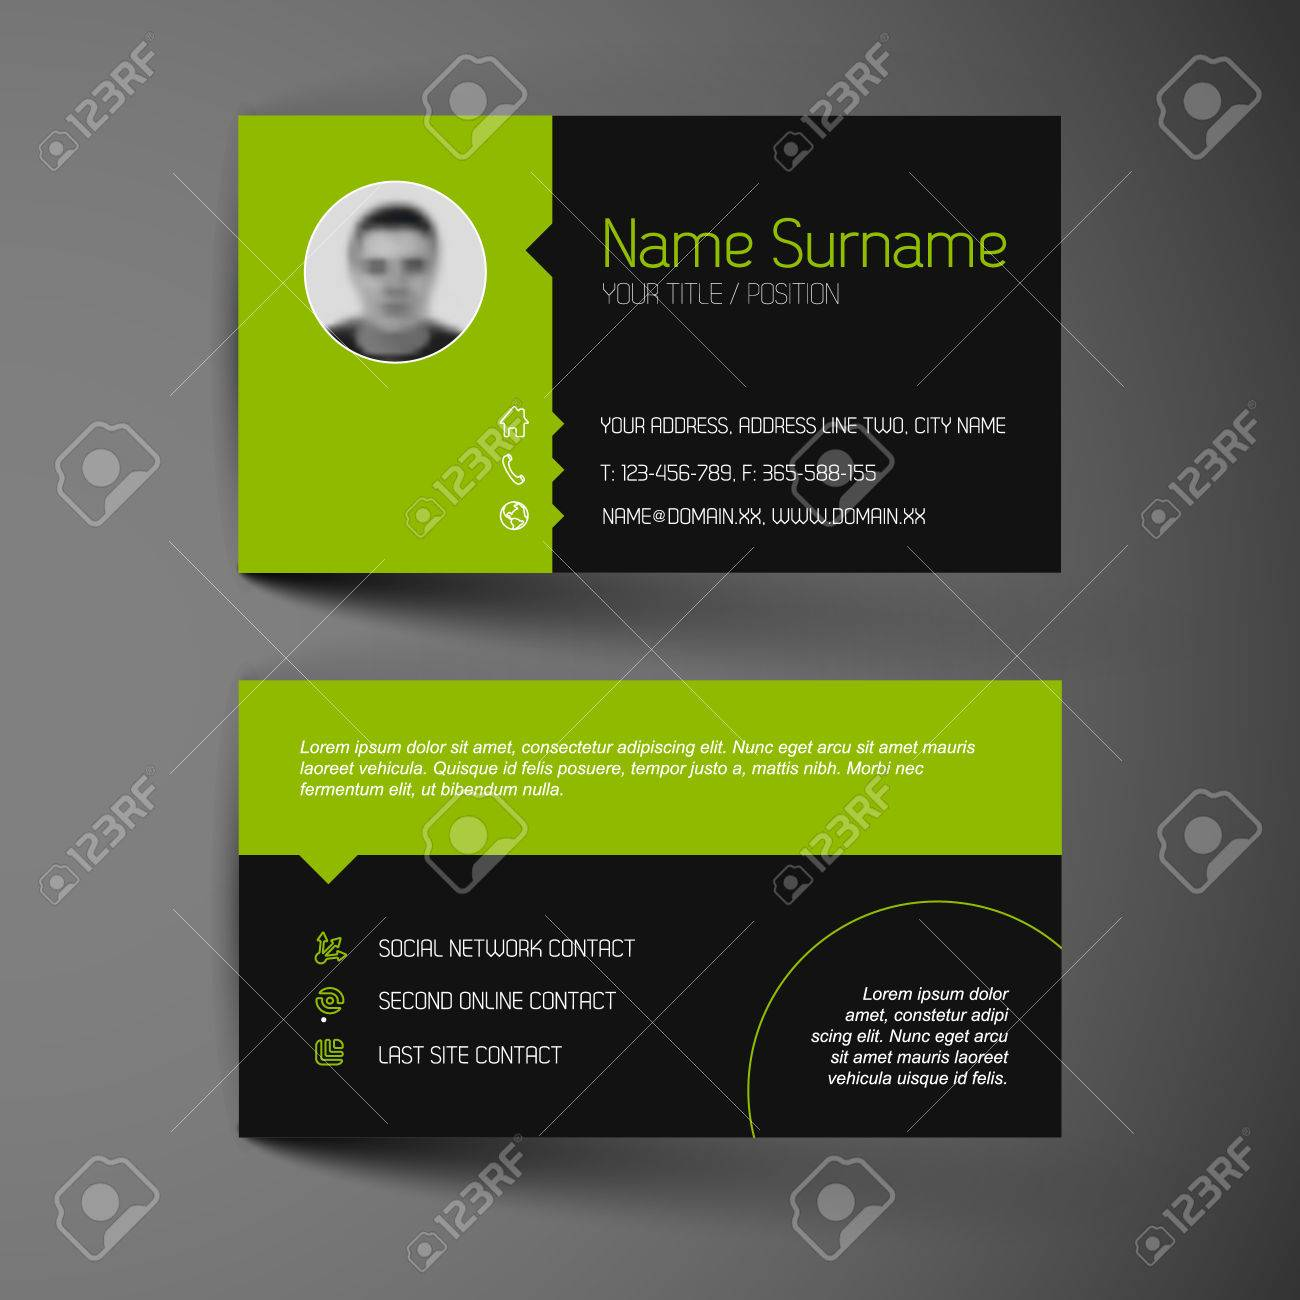 modern dark simple light business card template flat user modern dark simple light business card template flat user interface stock vector 28027418